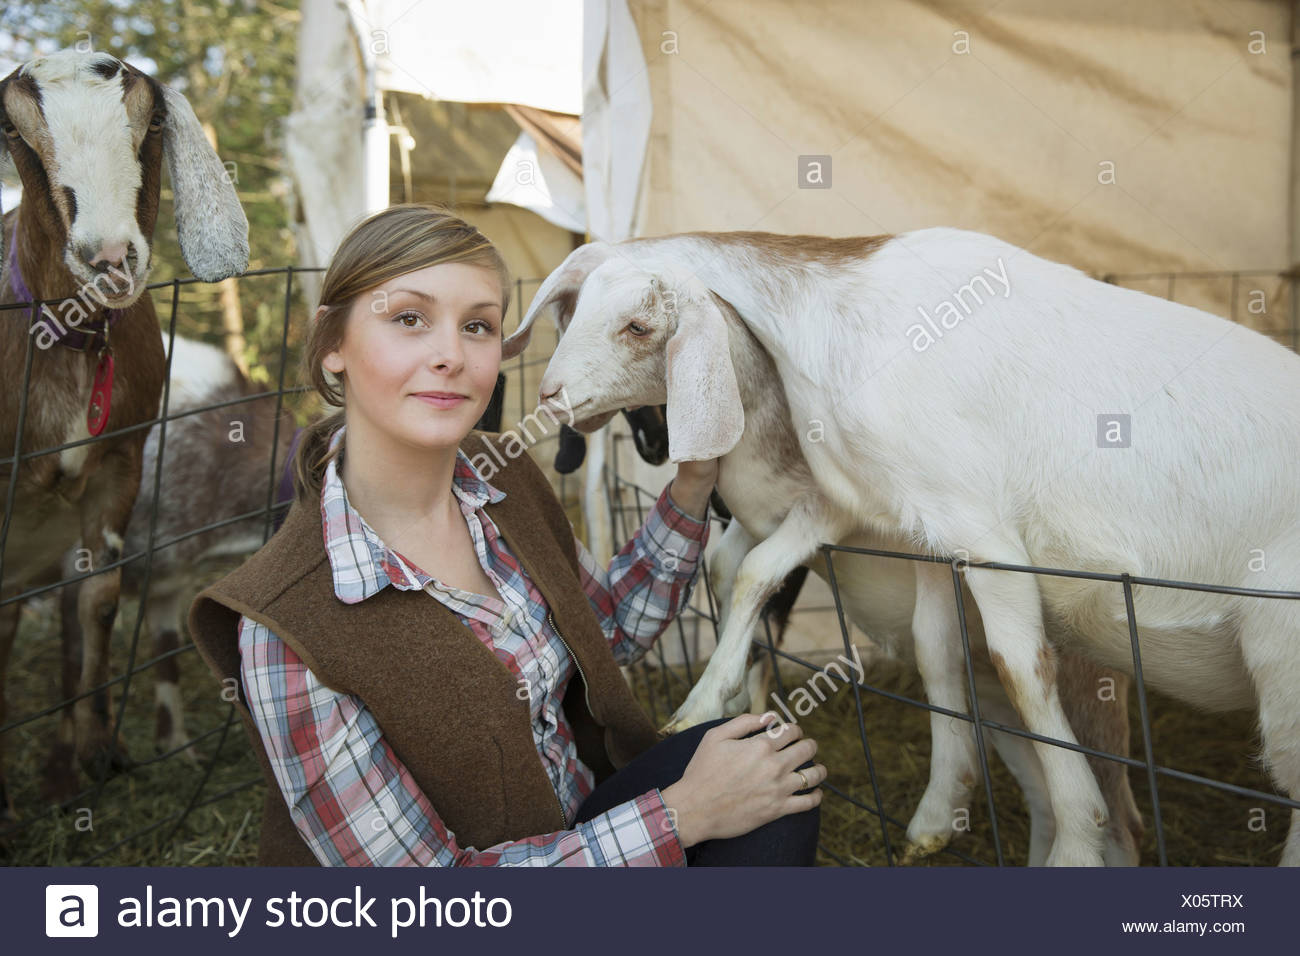 Goats in a pen leaning over the fences at a farm A young woman tickling the chin of a white goat - Stock Image